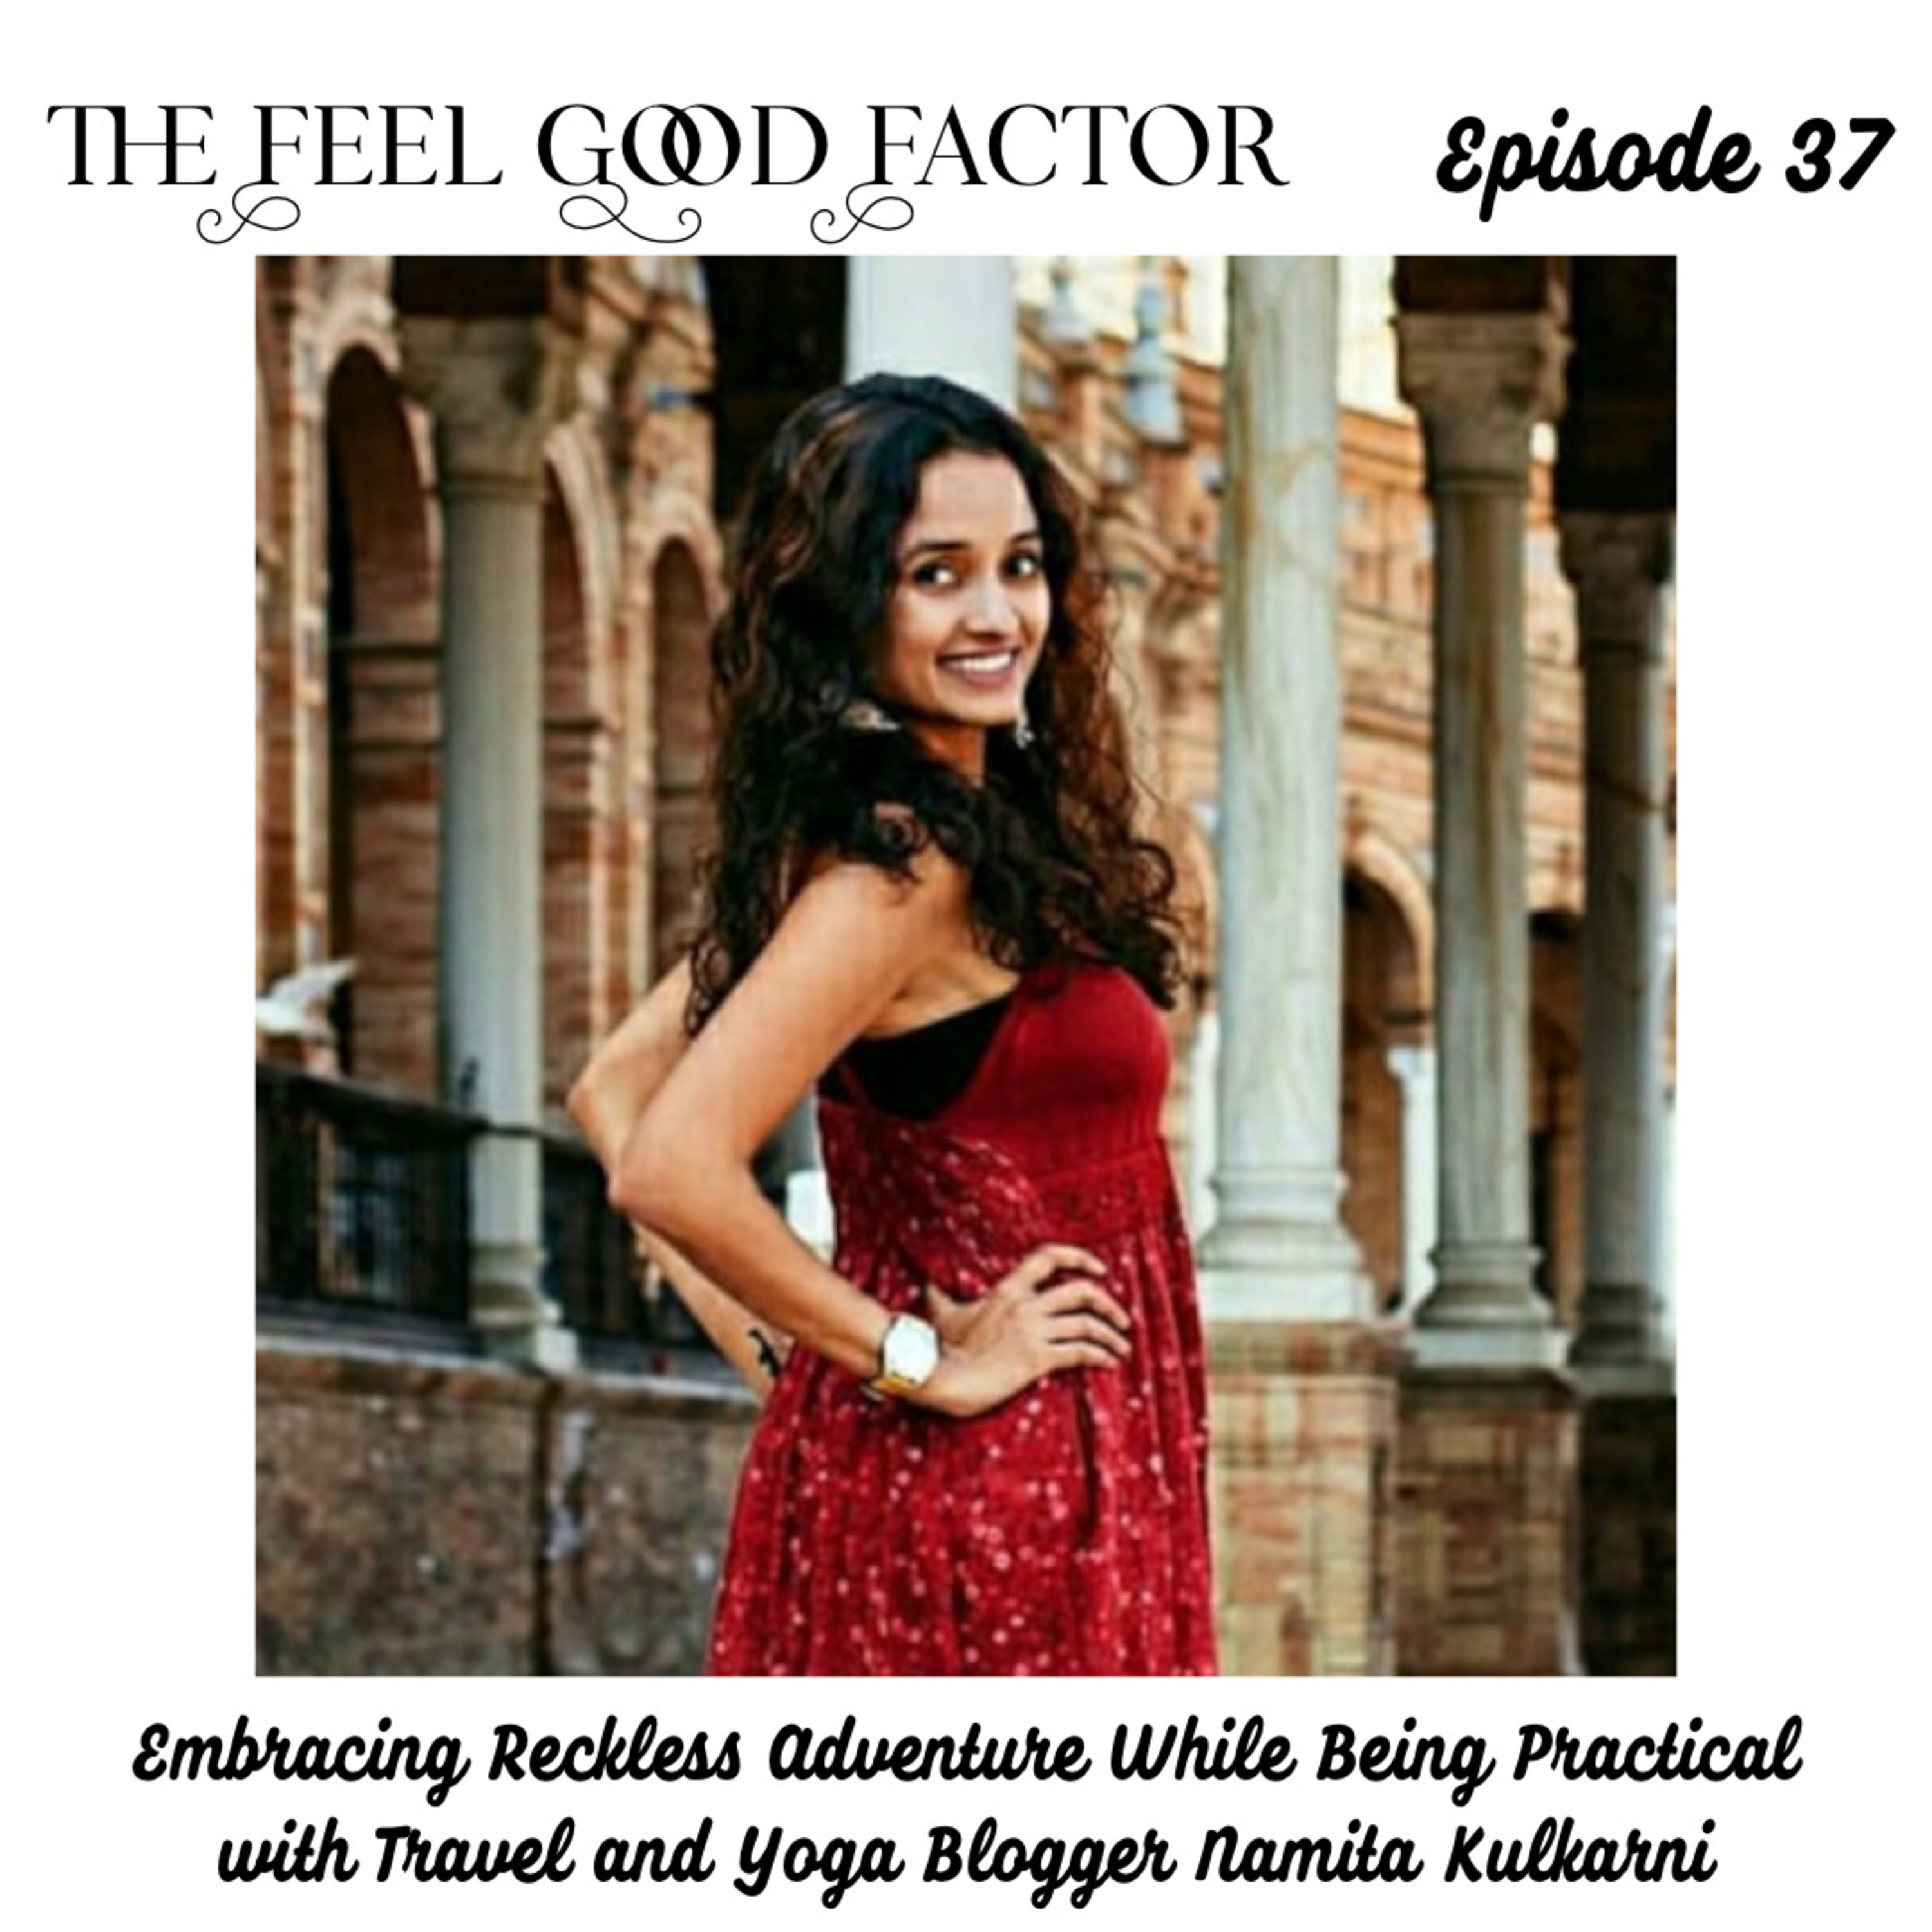 37: Embracing Reckless Adventure While Being Practical with Travel and Yoga Blogger Namita Kulkarni